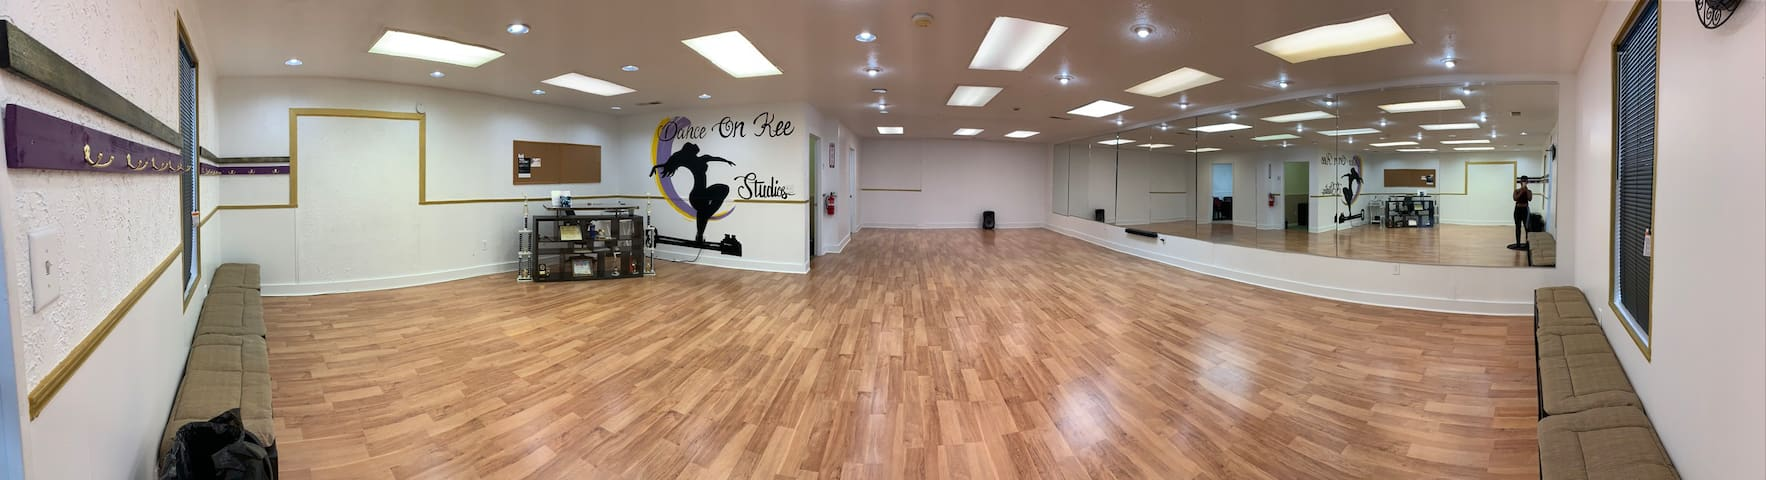 DanceRehearsal/Class Rental Space ($20/hr)